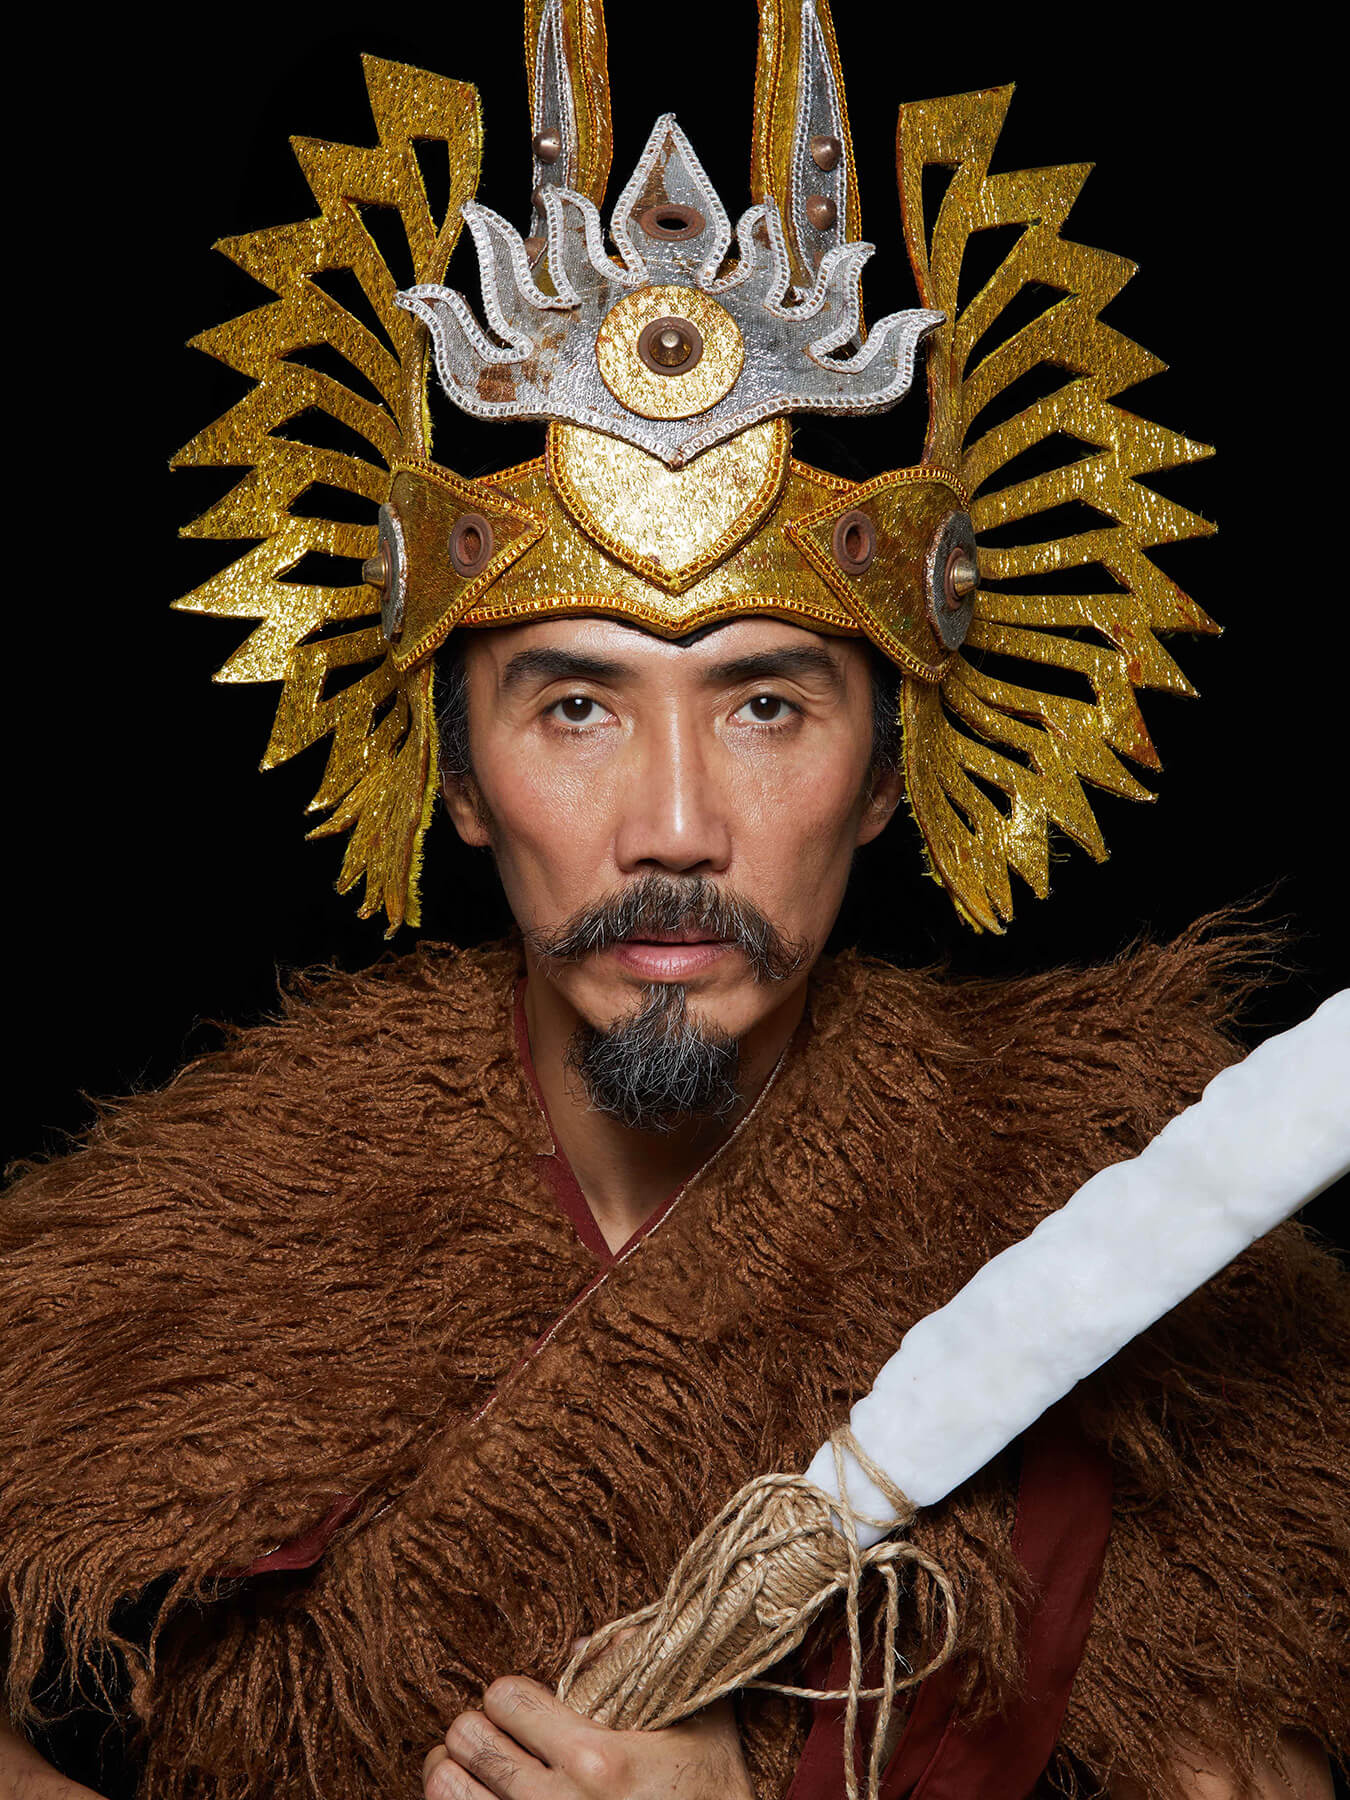 29 Jan 2018 Derong is photographed in a generic medieval warrior costume